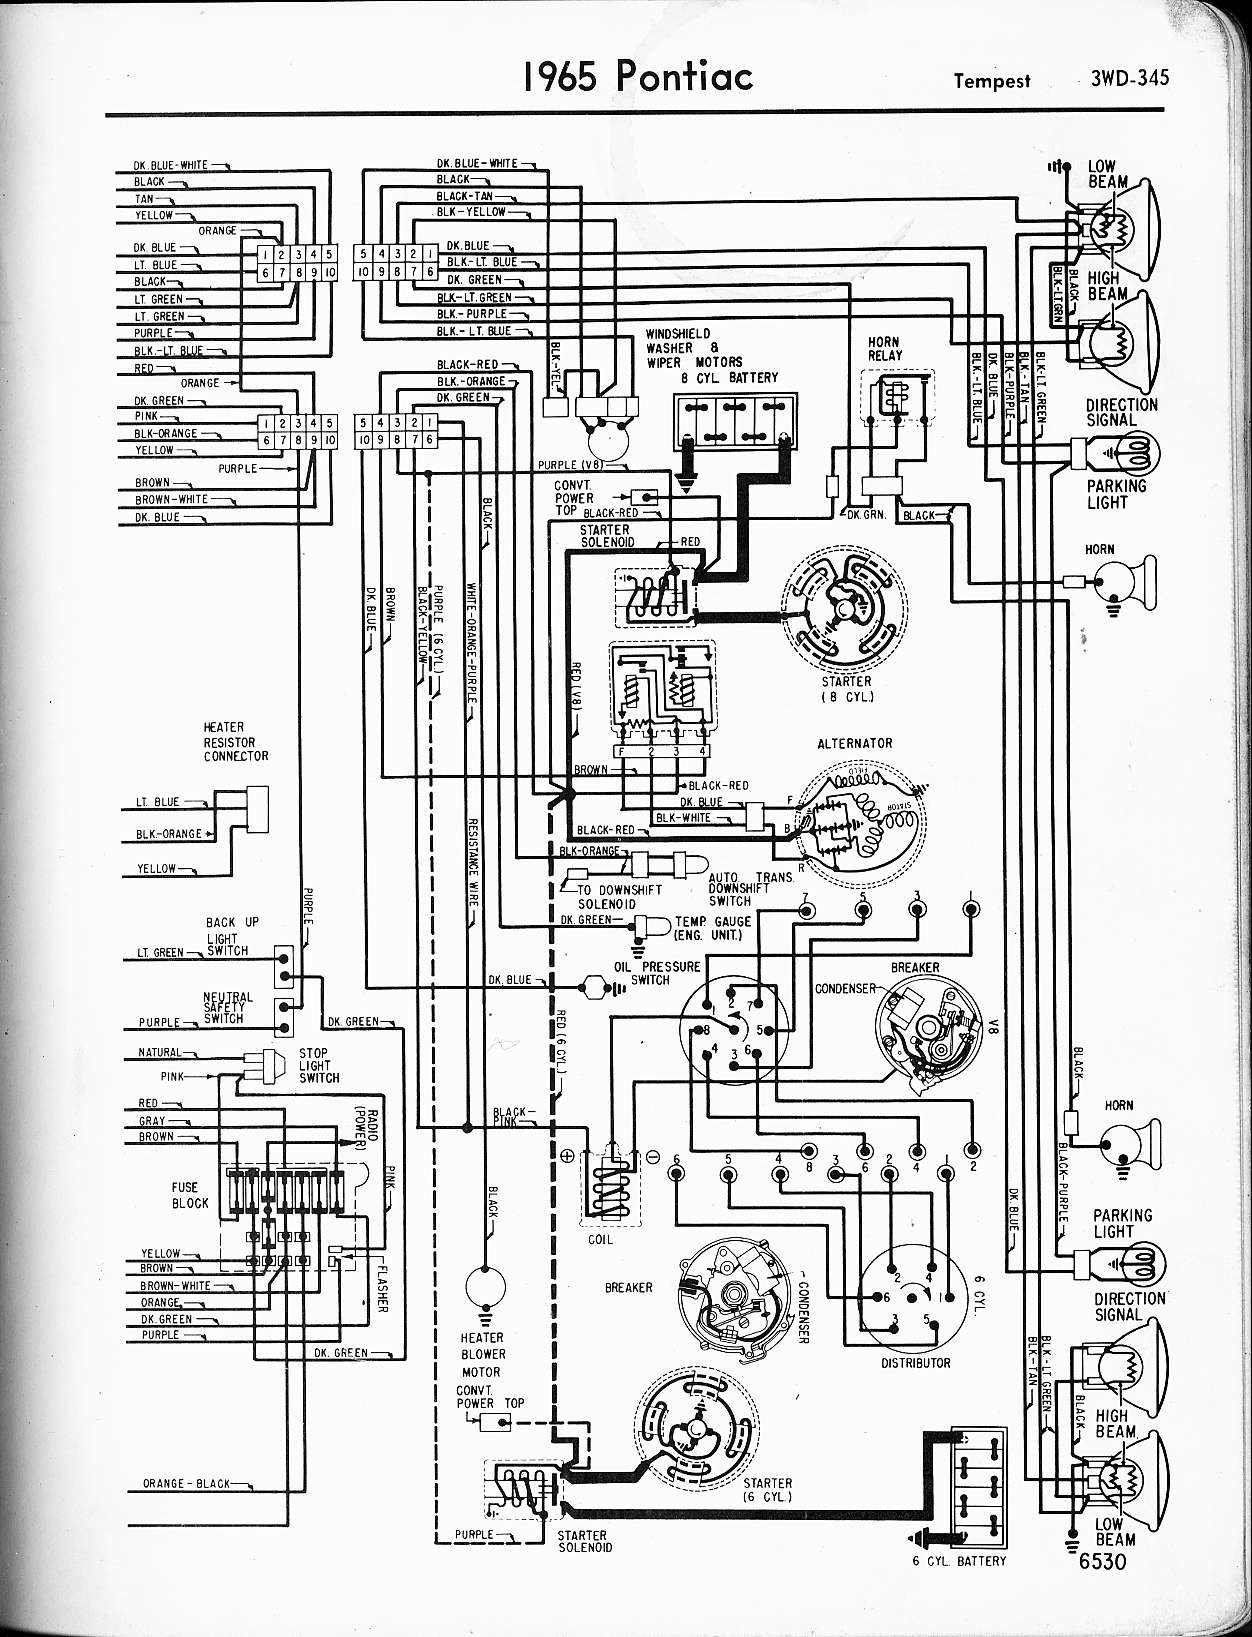 1969 Impala Wiring Diagram Wj Fuse Box For Wiring Diagram Schematics